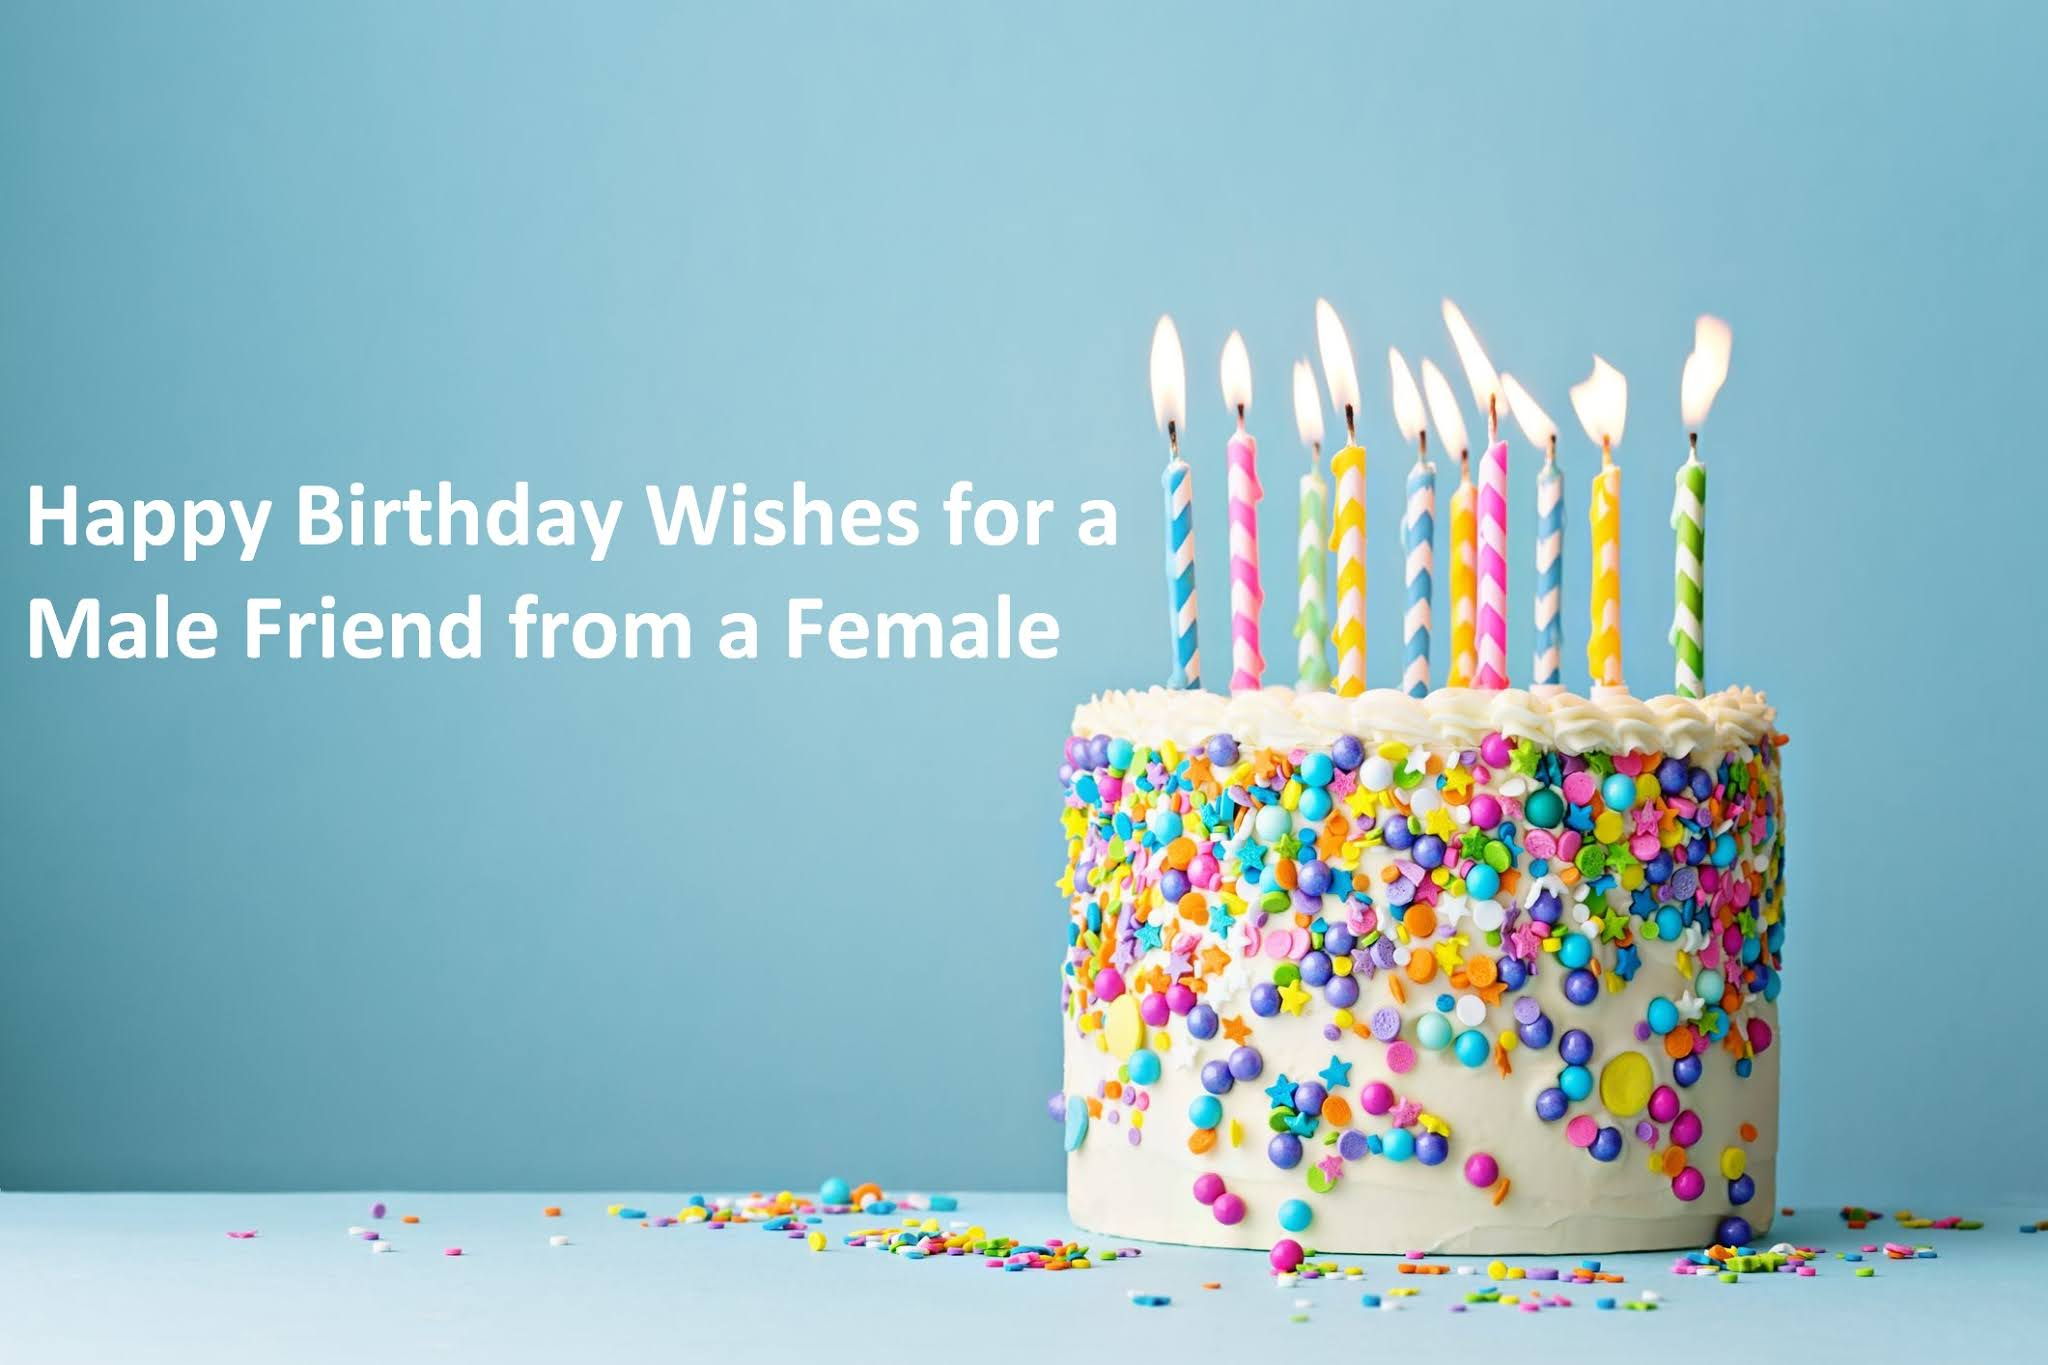 Happy Birthday Wishes for a Male Friend from a Female